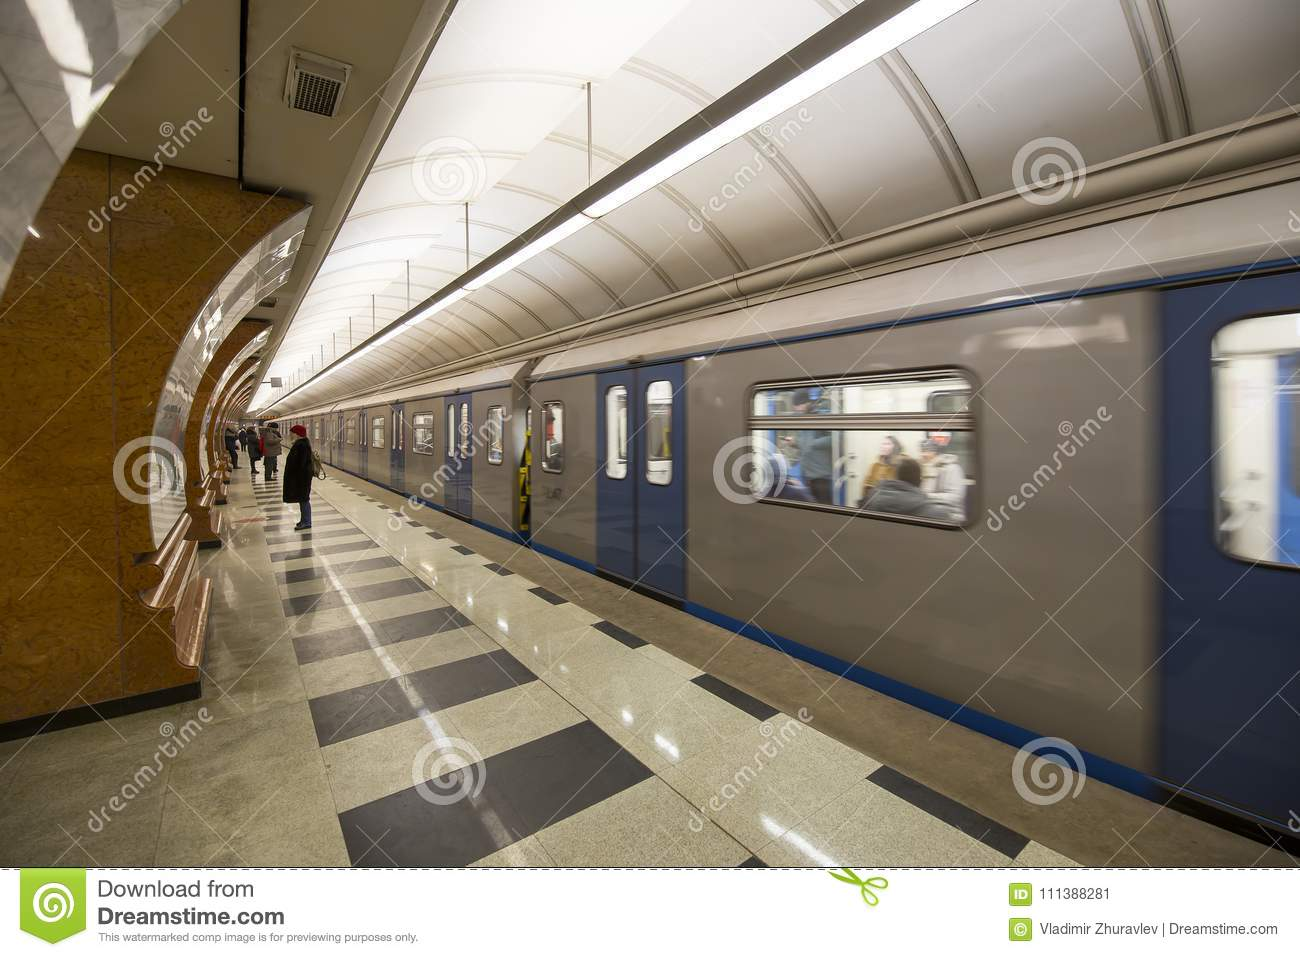 In Moscow, the opening of two metro stations is scheduled for a month on the Butovskaya line 80